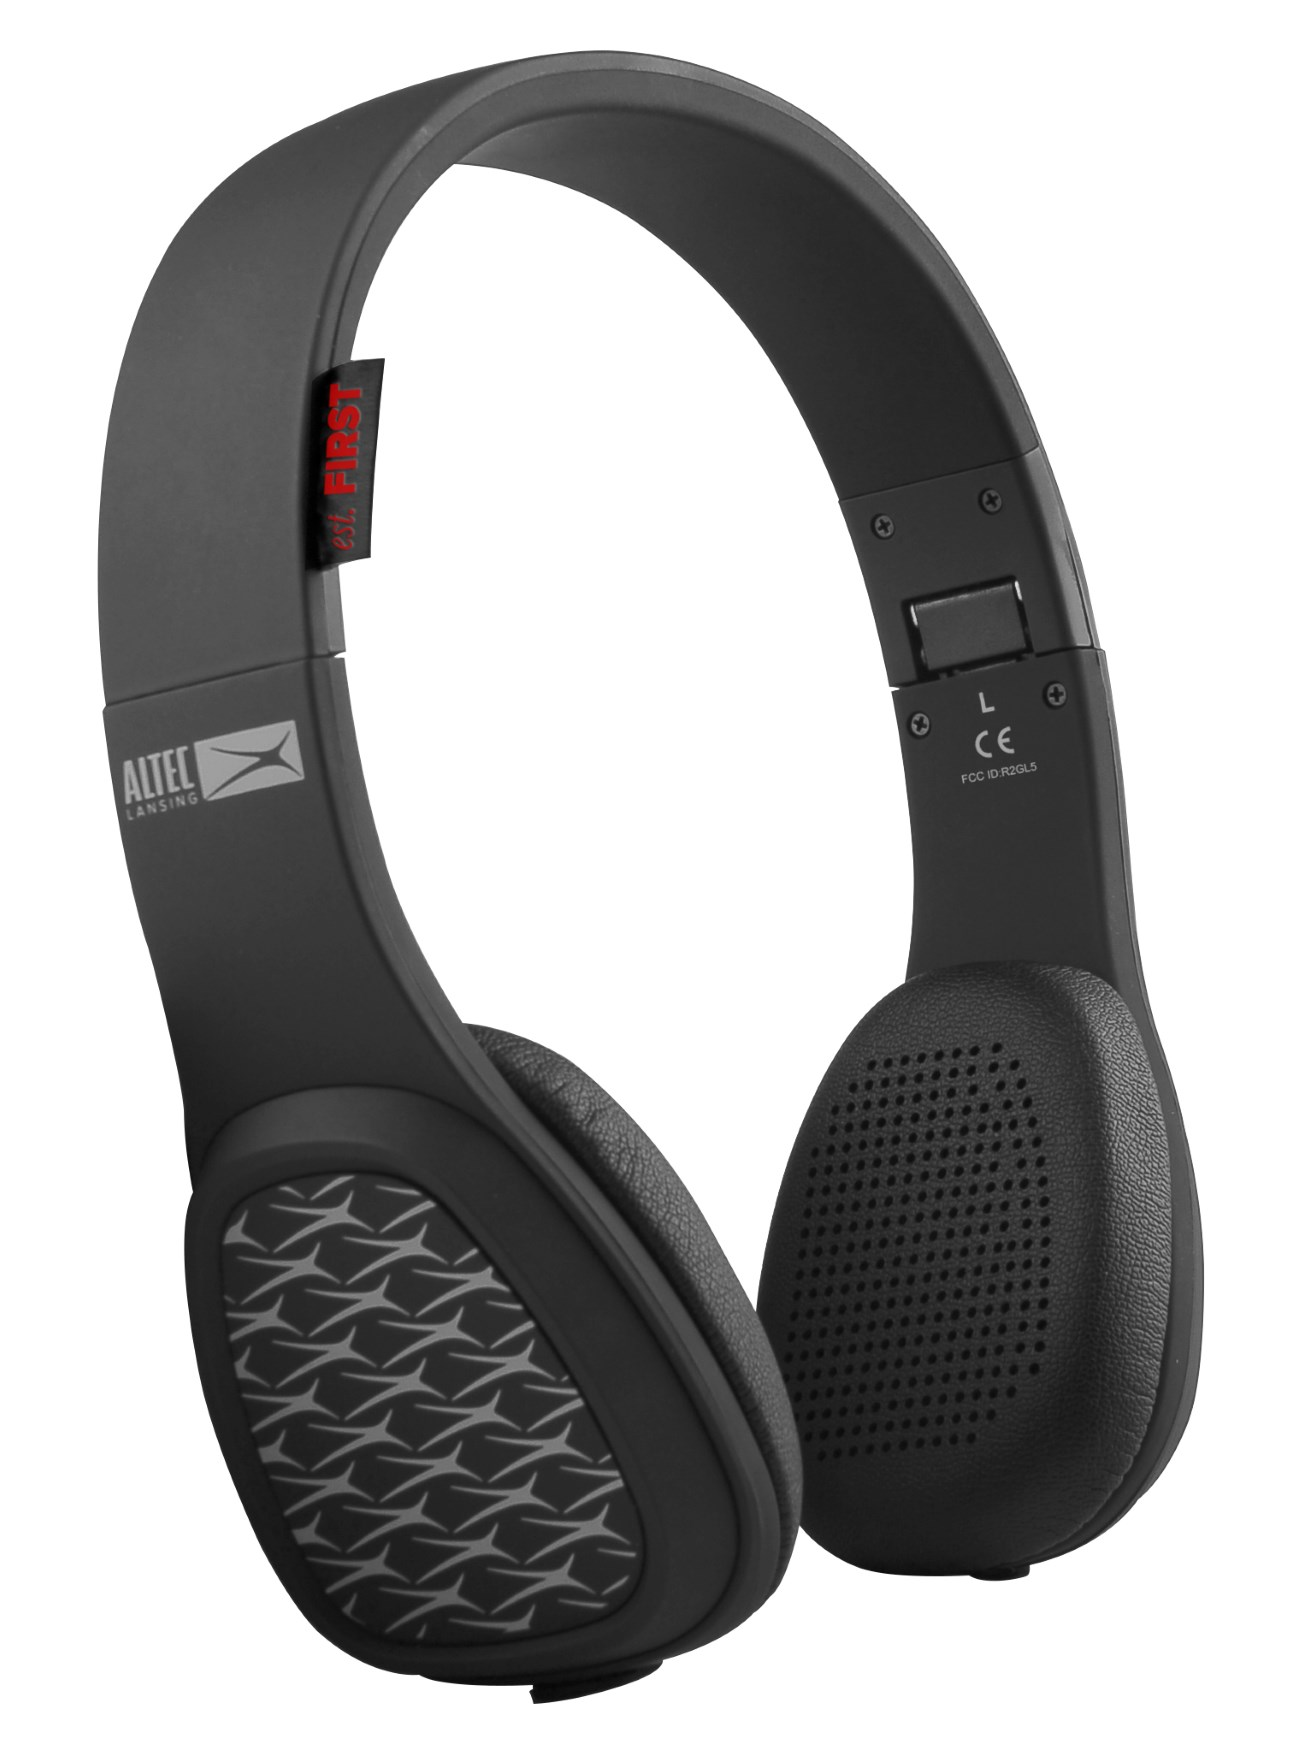 ALTEC LANSING bluetooth headphones Avenue play & party, 115dB, Touch, BK - ALTEC 21747